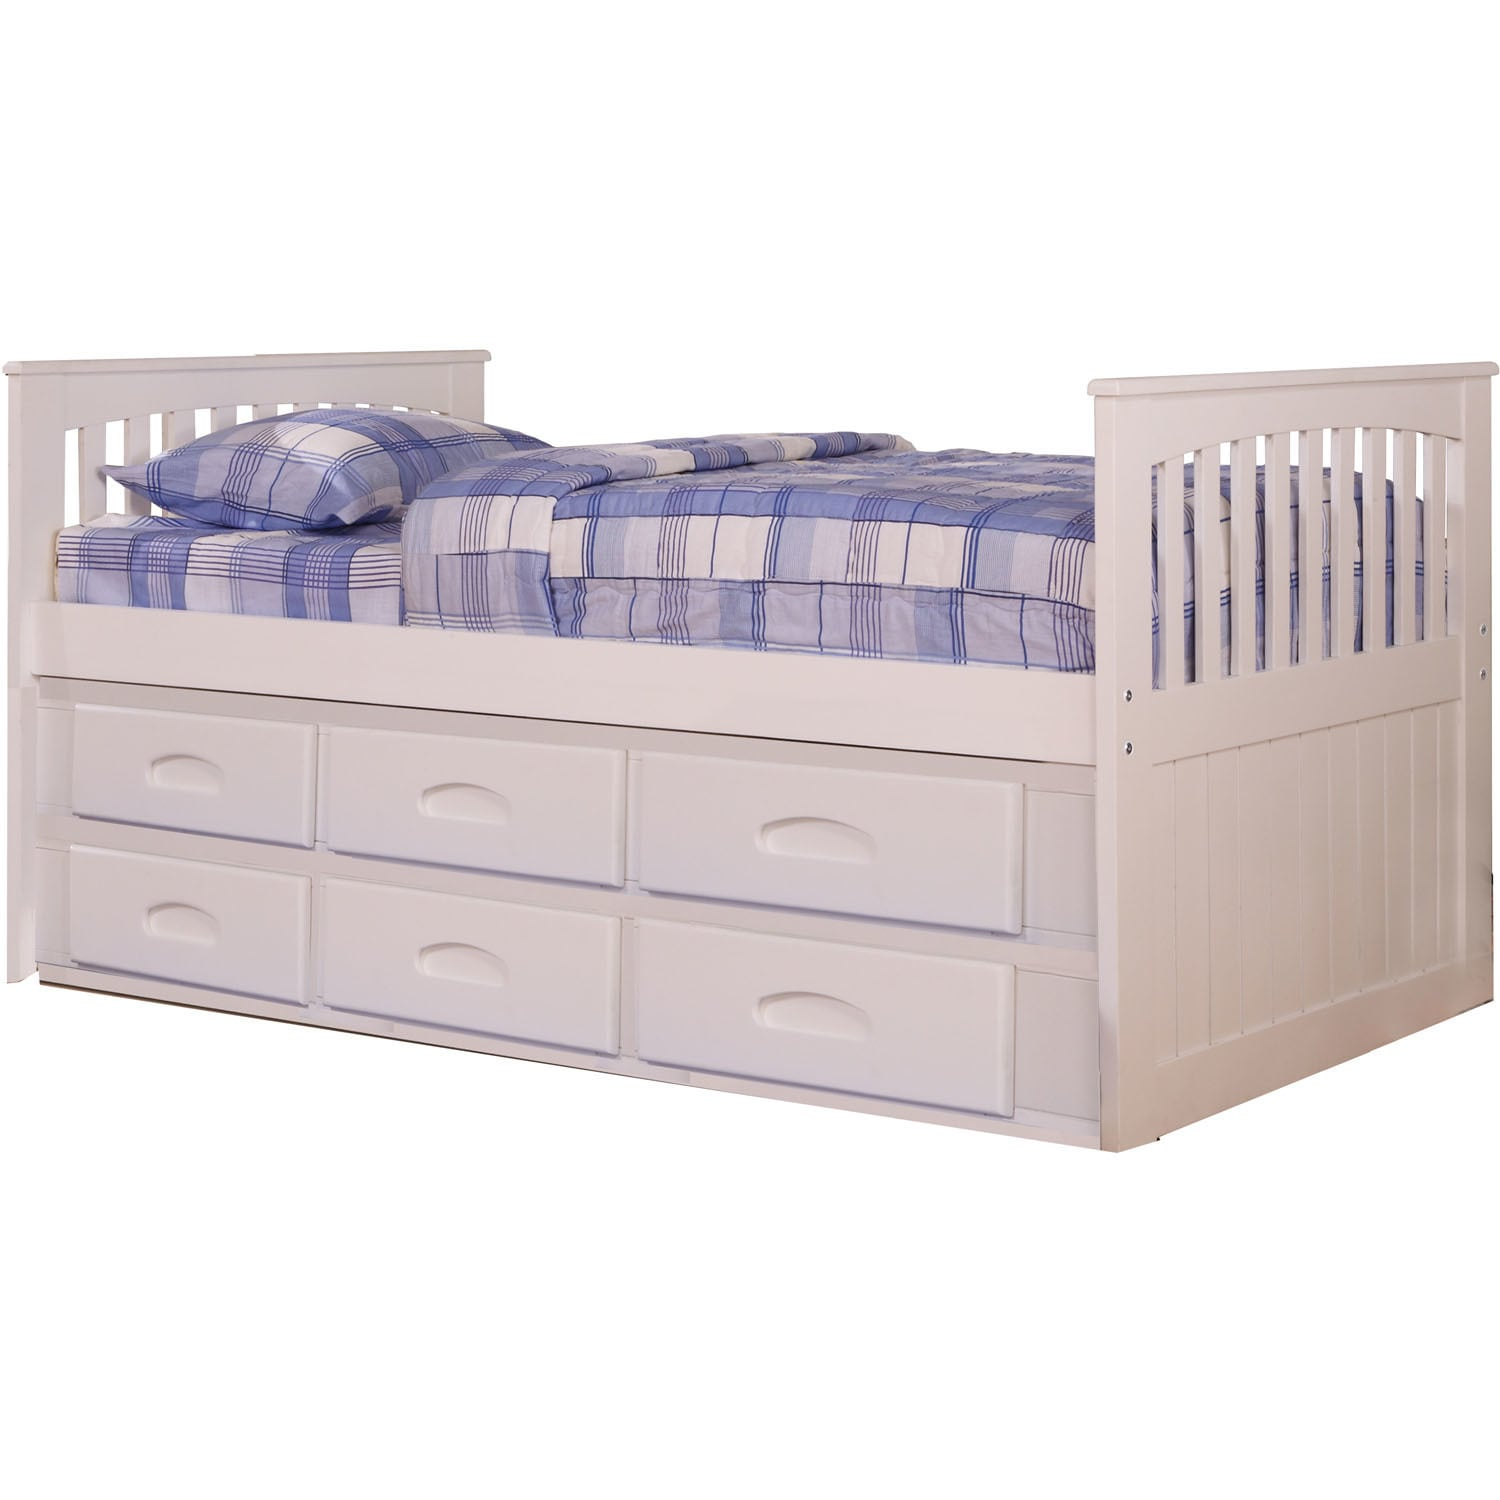 neutral twin calm and drawer aweinspiring also in tall boys bed beds slide frame drawers together size bunk ga side white kids kidsroom stairs table with along set